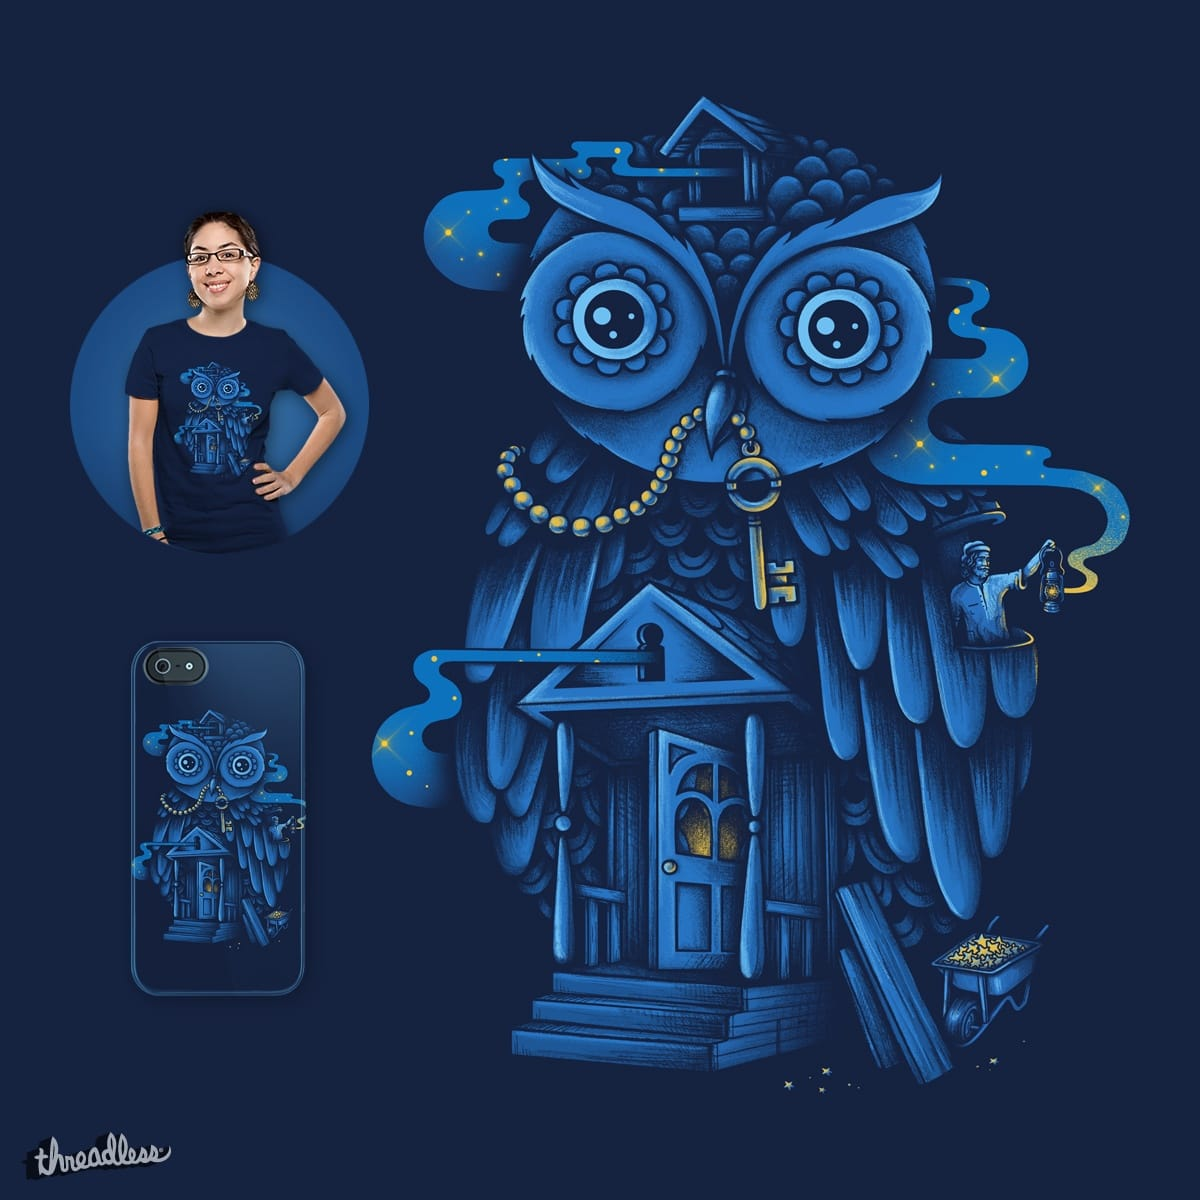 Guardian of the Night by buko on Threadless